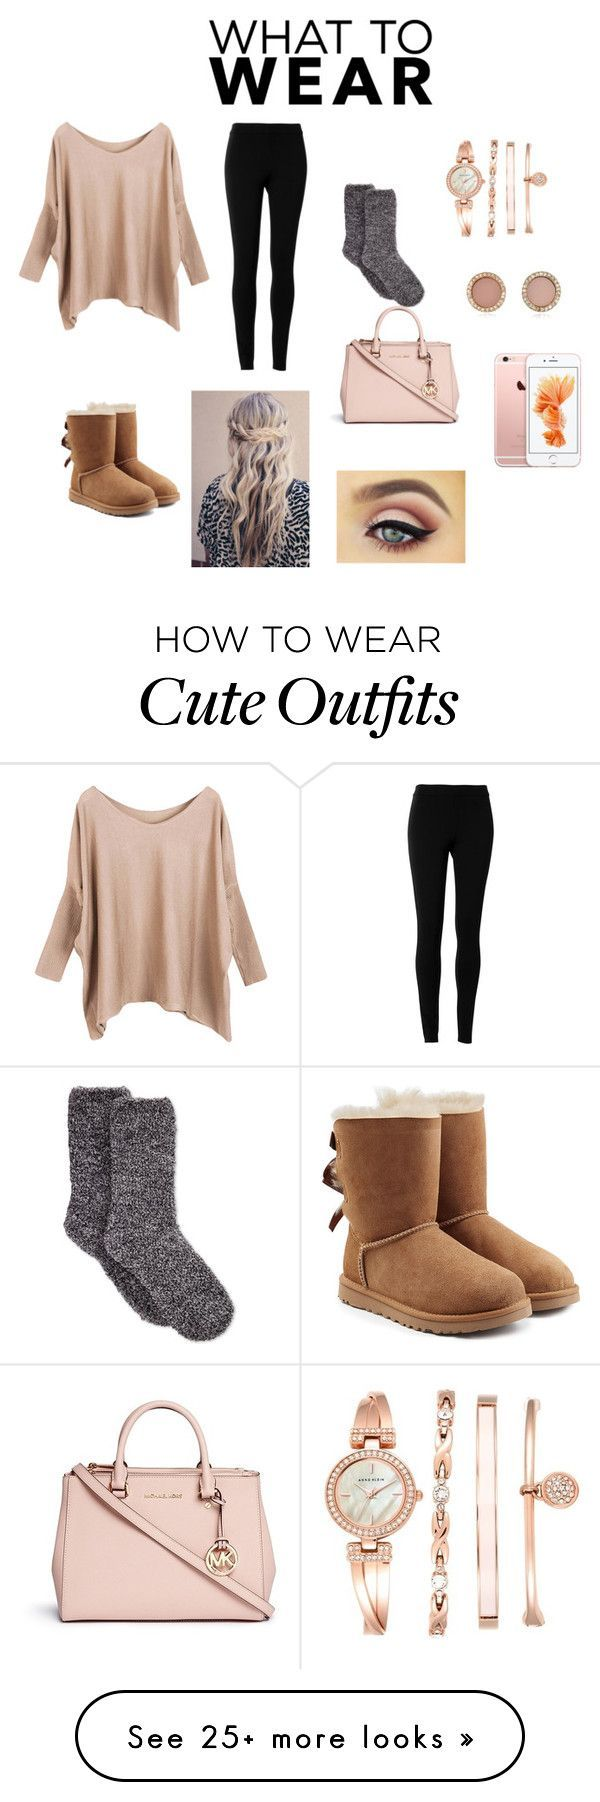 Cute Outfits Sets - Fashion